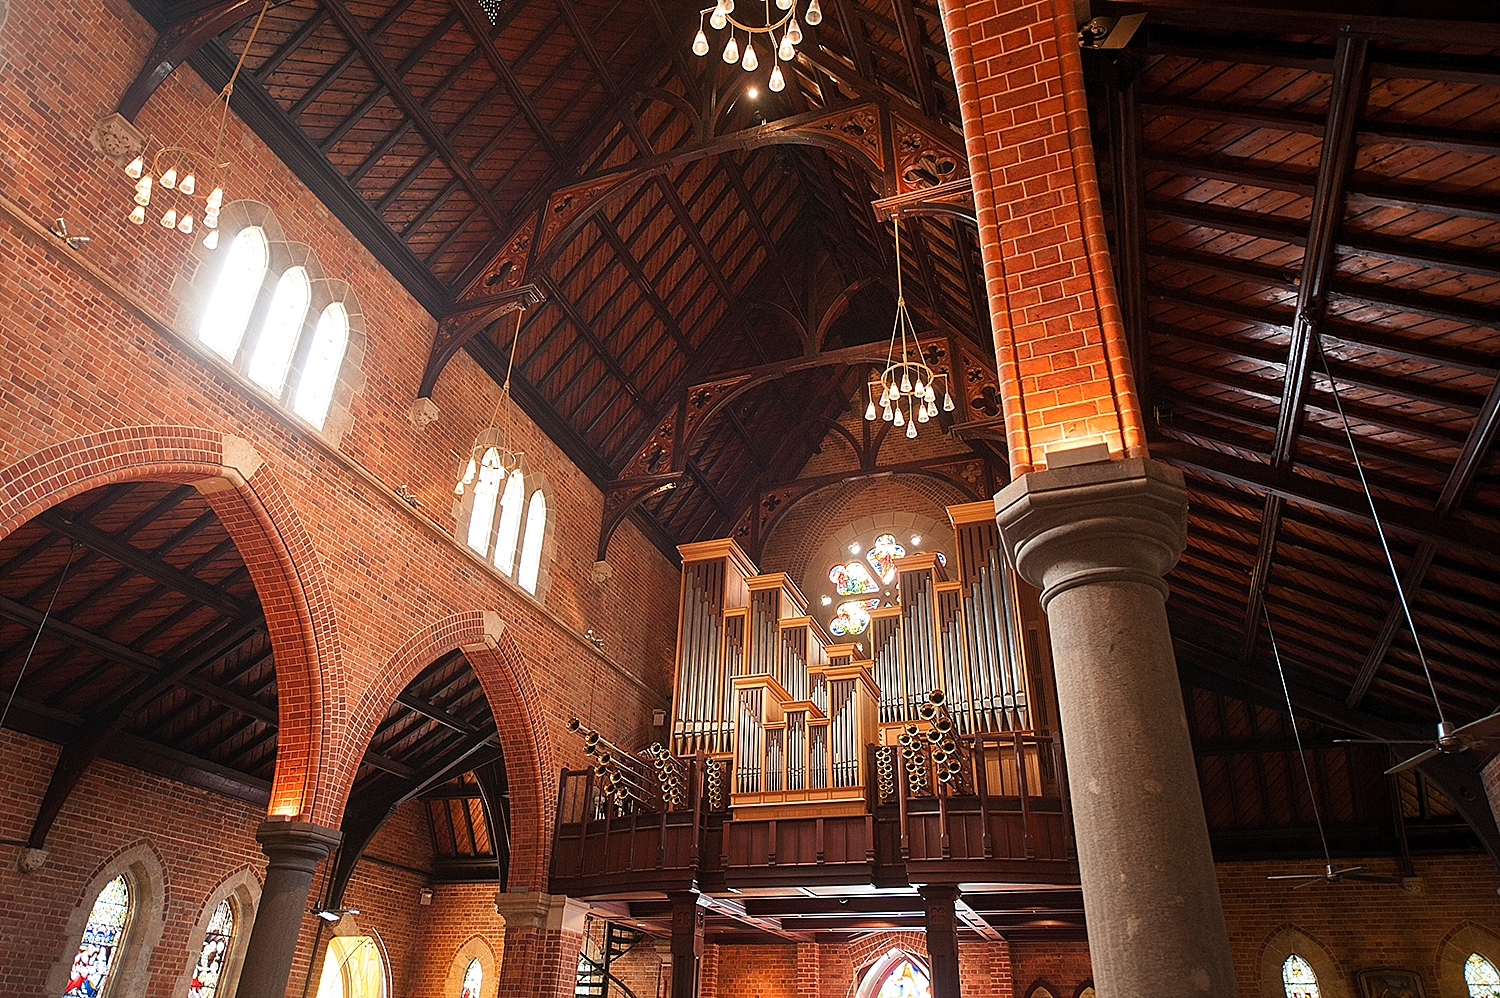 28_st georges cathedral acqua viva wedding perth.jpg